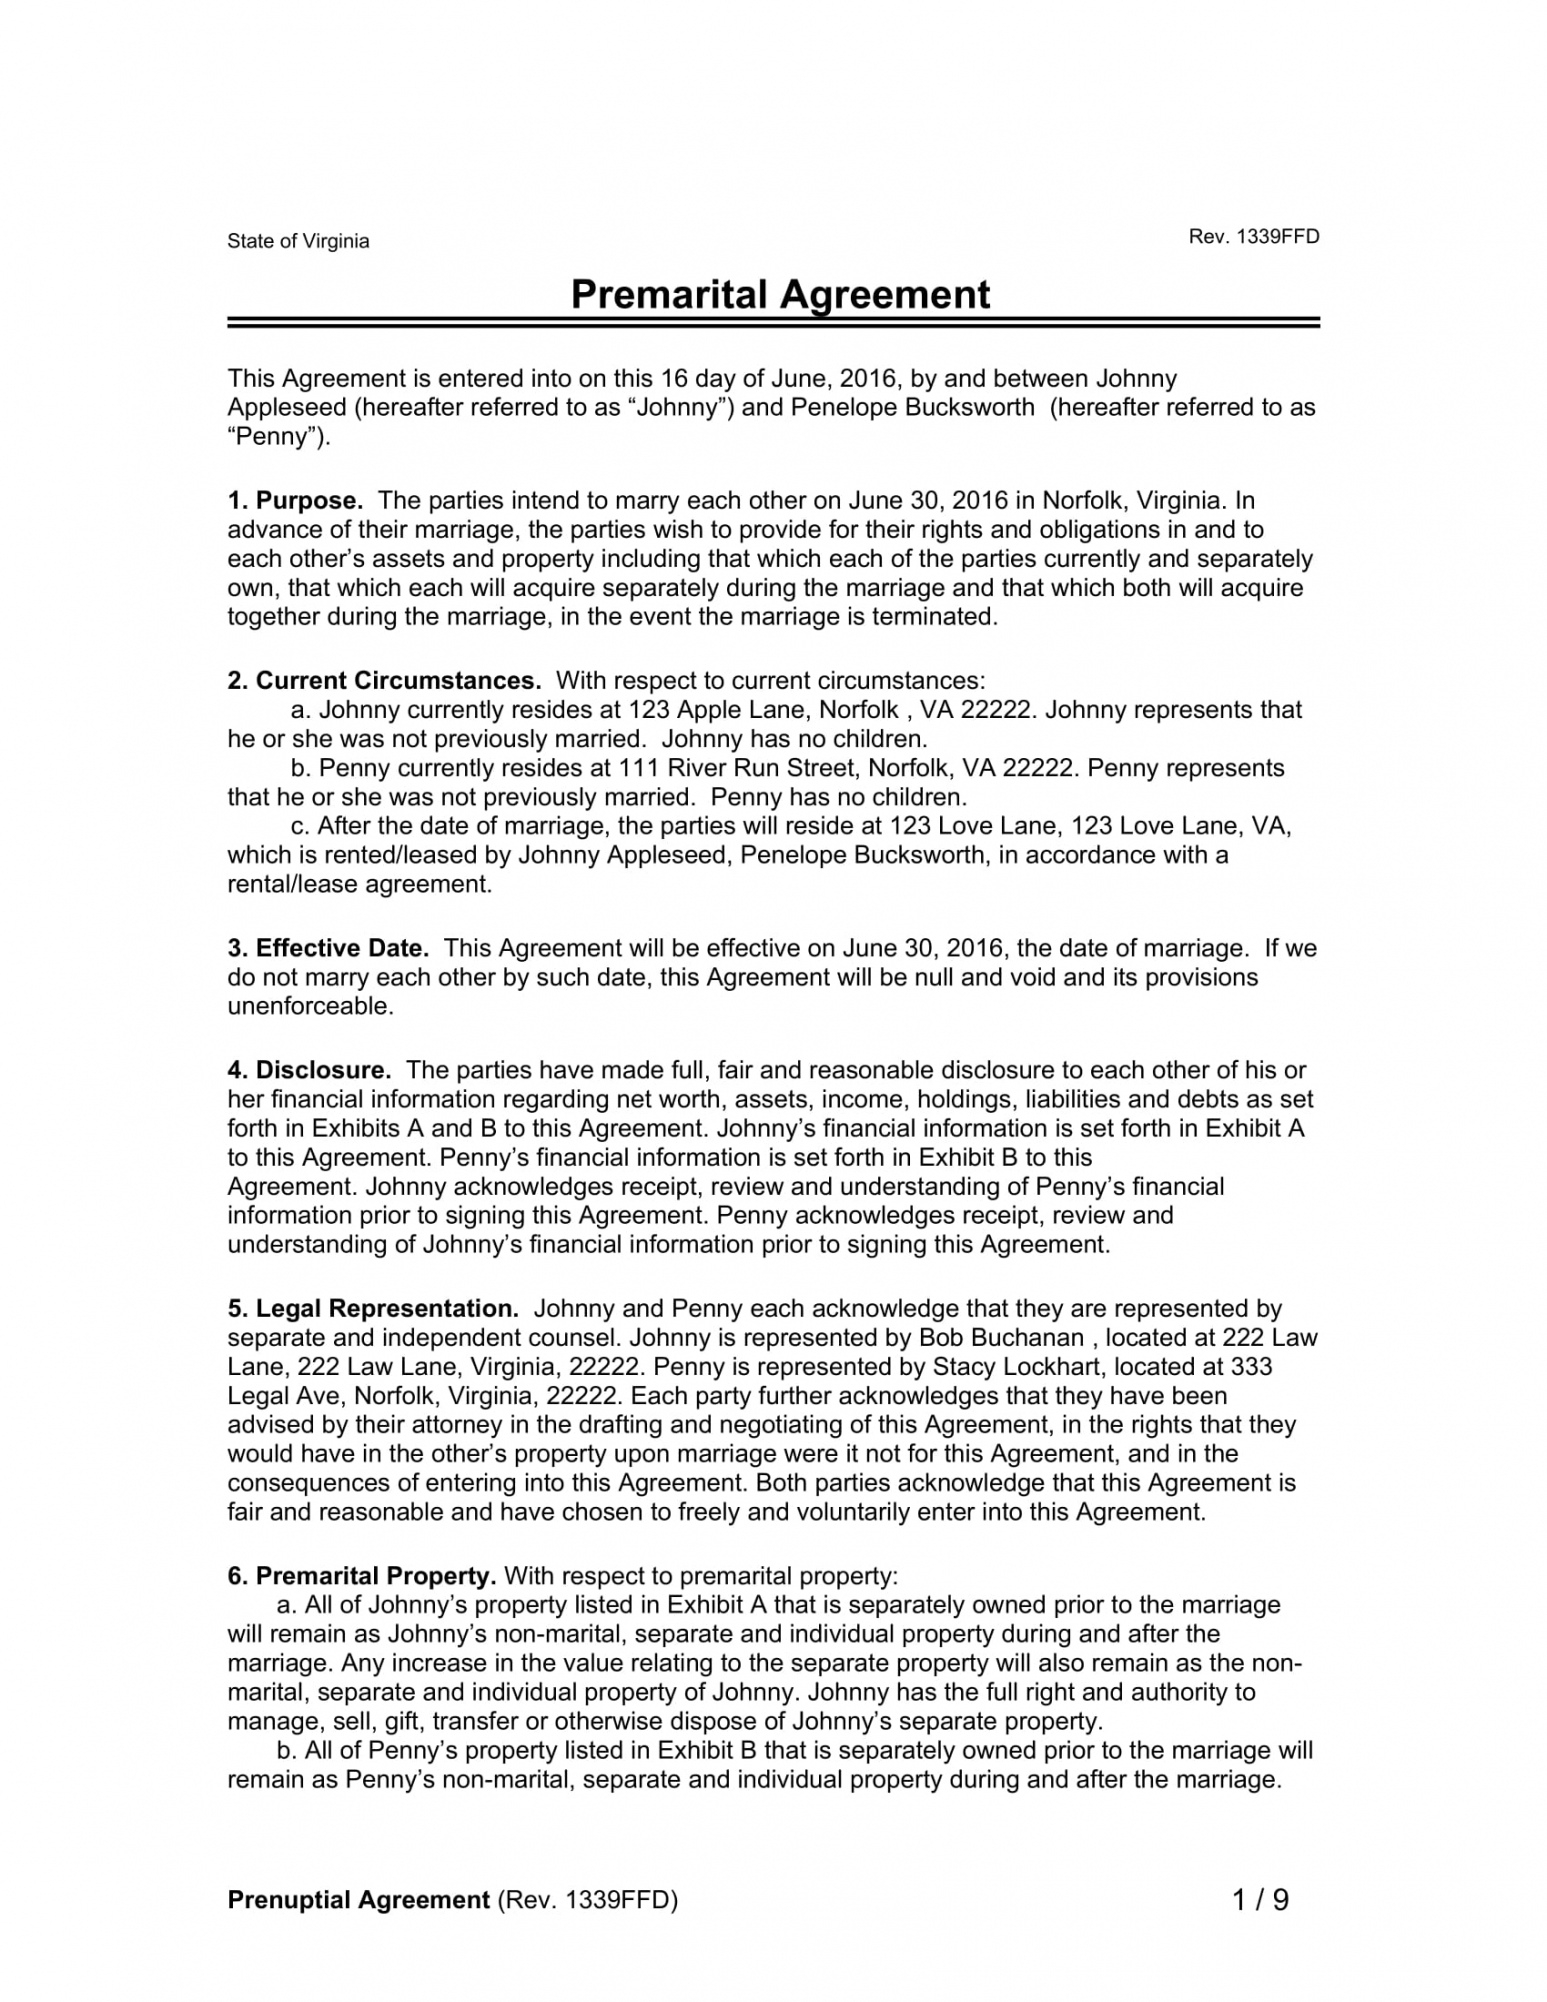 sample free 2 premarital contract forms in pdf  ms word prenuptial agreement template pdf doc